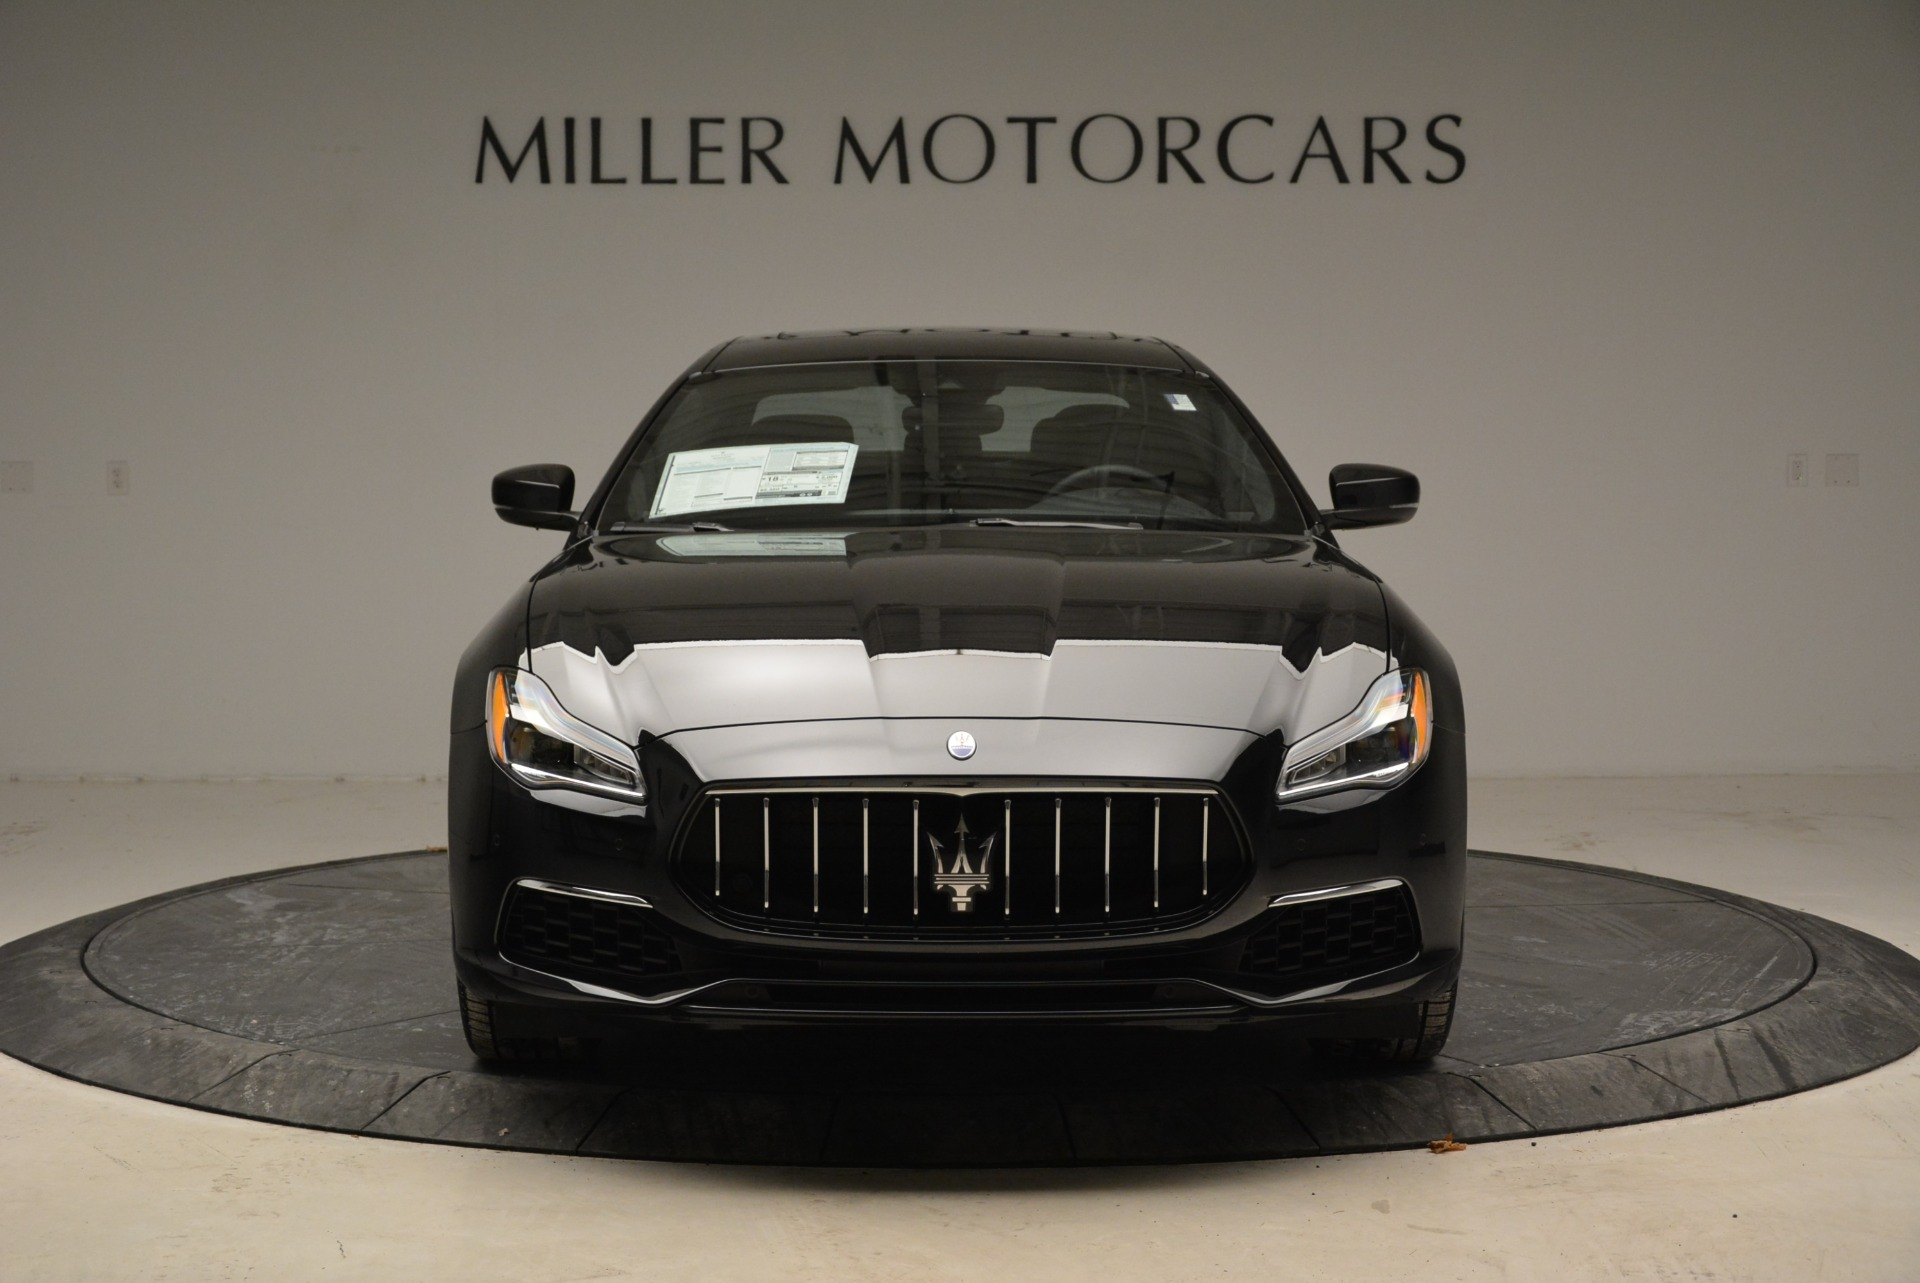 New 2018 Maserati Quattroporte S Q4 GranLusso For Sale In Greenwich, CT 1815_p12